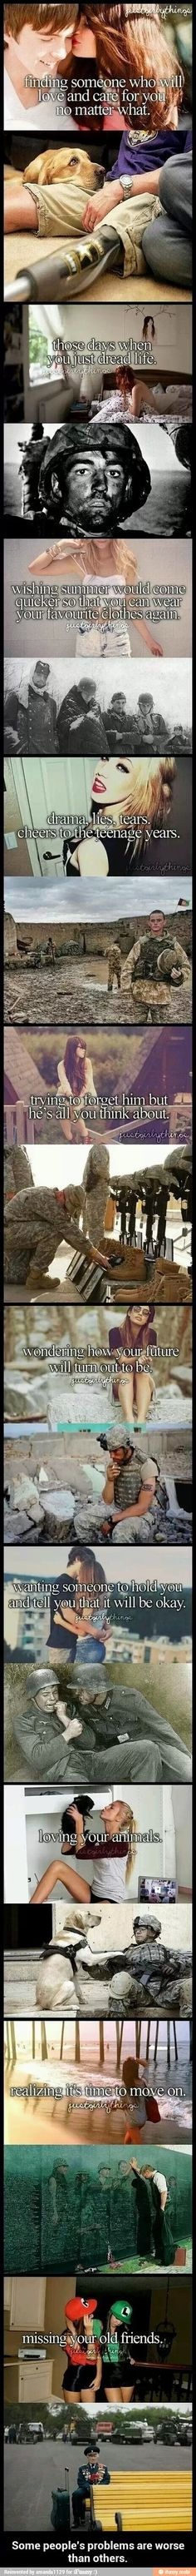 Finally a worthwhile picture! Teenage problems versus military